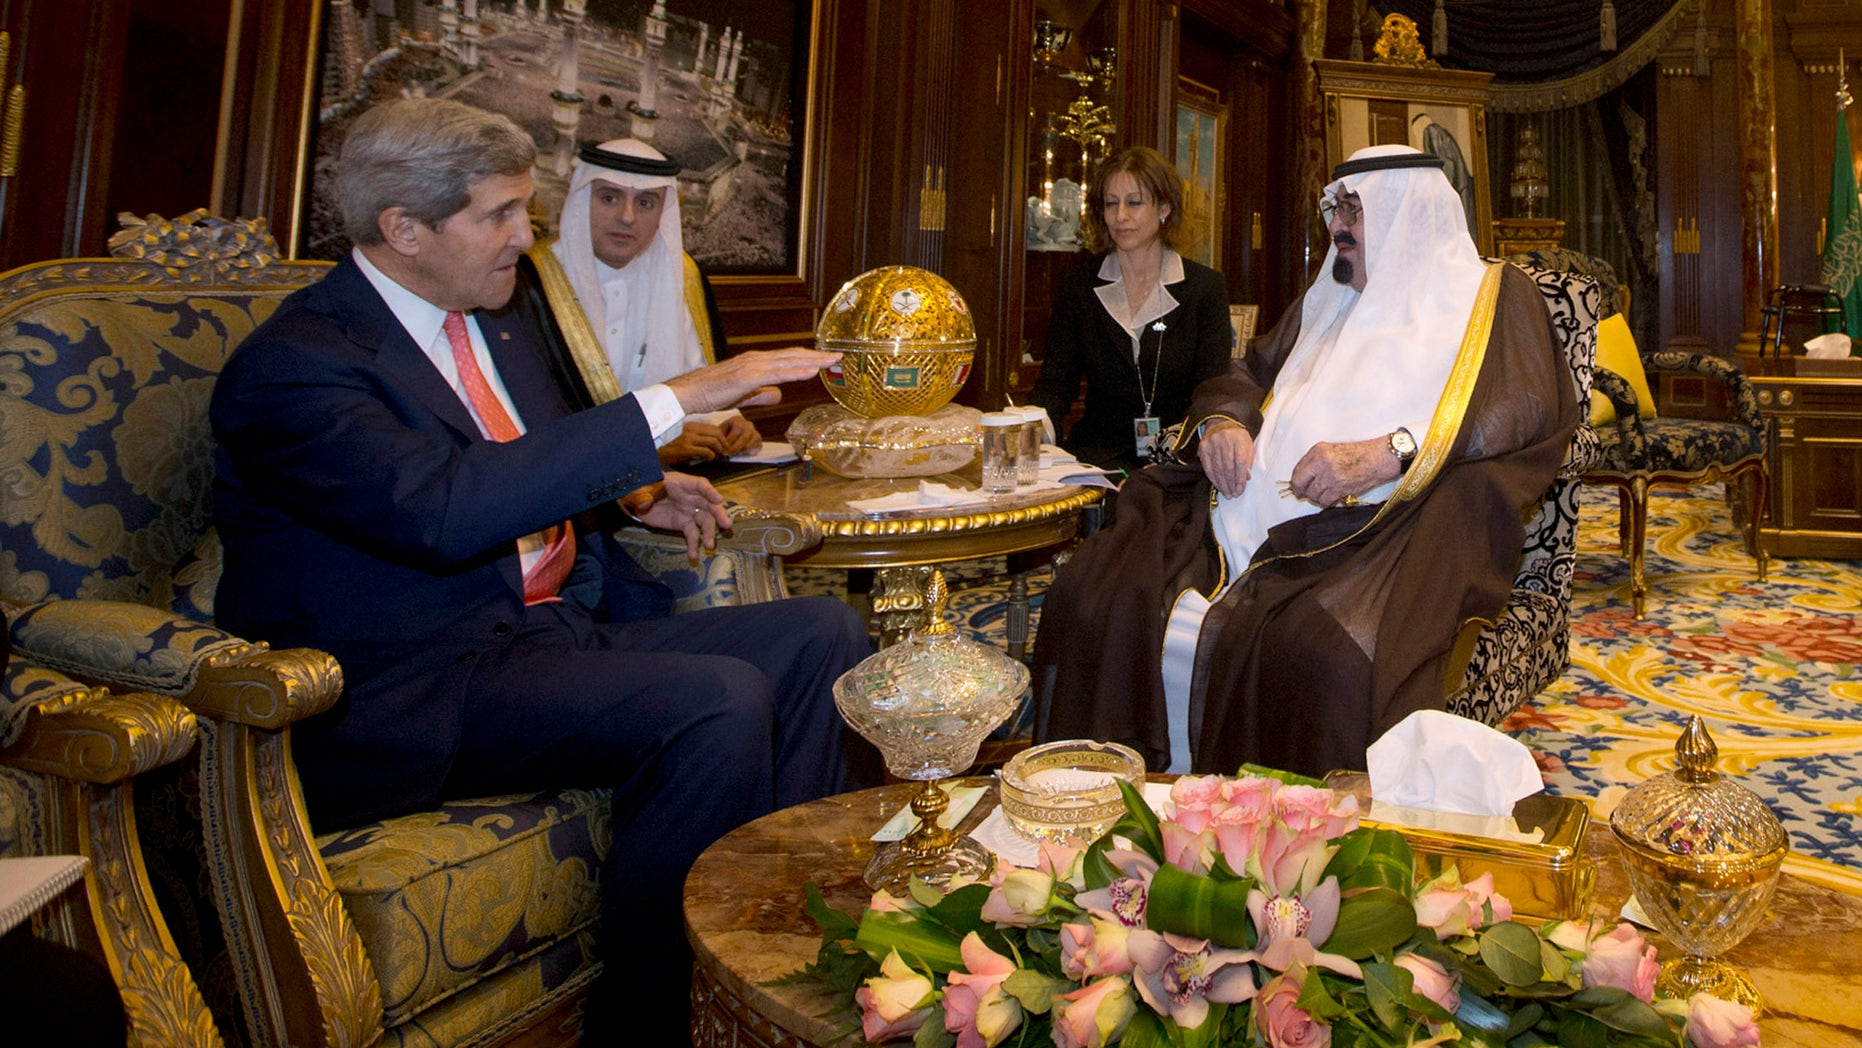 "U.S. Secretary of State John Kerry meets with Saudi Arabia's King Abdullah, right, in Riyadh, Monday, Nov. 4, 2013. Seeking to bridge multiple policy rifts with Saudi Arabia, Kerry hailed the kingdom's role as ""the senior player"" in the Middle East on Monday. Speaking to employees at the U.S. Embassy in Riyadh ahead of meetings with Saudi Arabia's king and foreign minister, Kerry said Saudi Arabia had assumed the Arab leadership mantle from Egypt, which is currently distracted by major domestic uncertainty. He said strengthening the U.S.-Saudi partnership is critical to Mideast security and stability and cementing tentative political transitions around the region. (AP Photo/Jason Reed, Pool)"